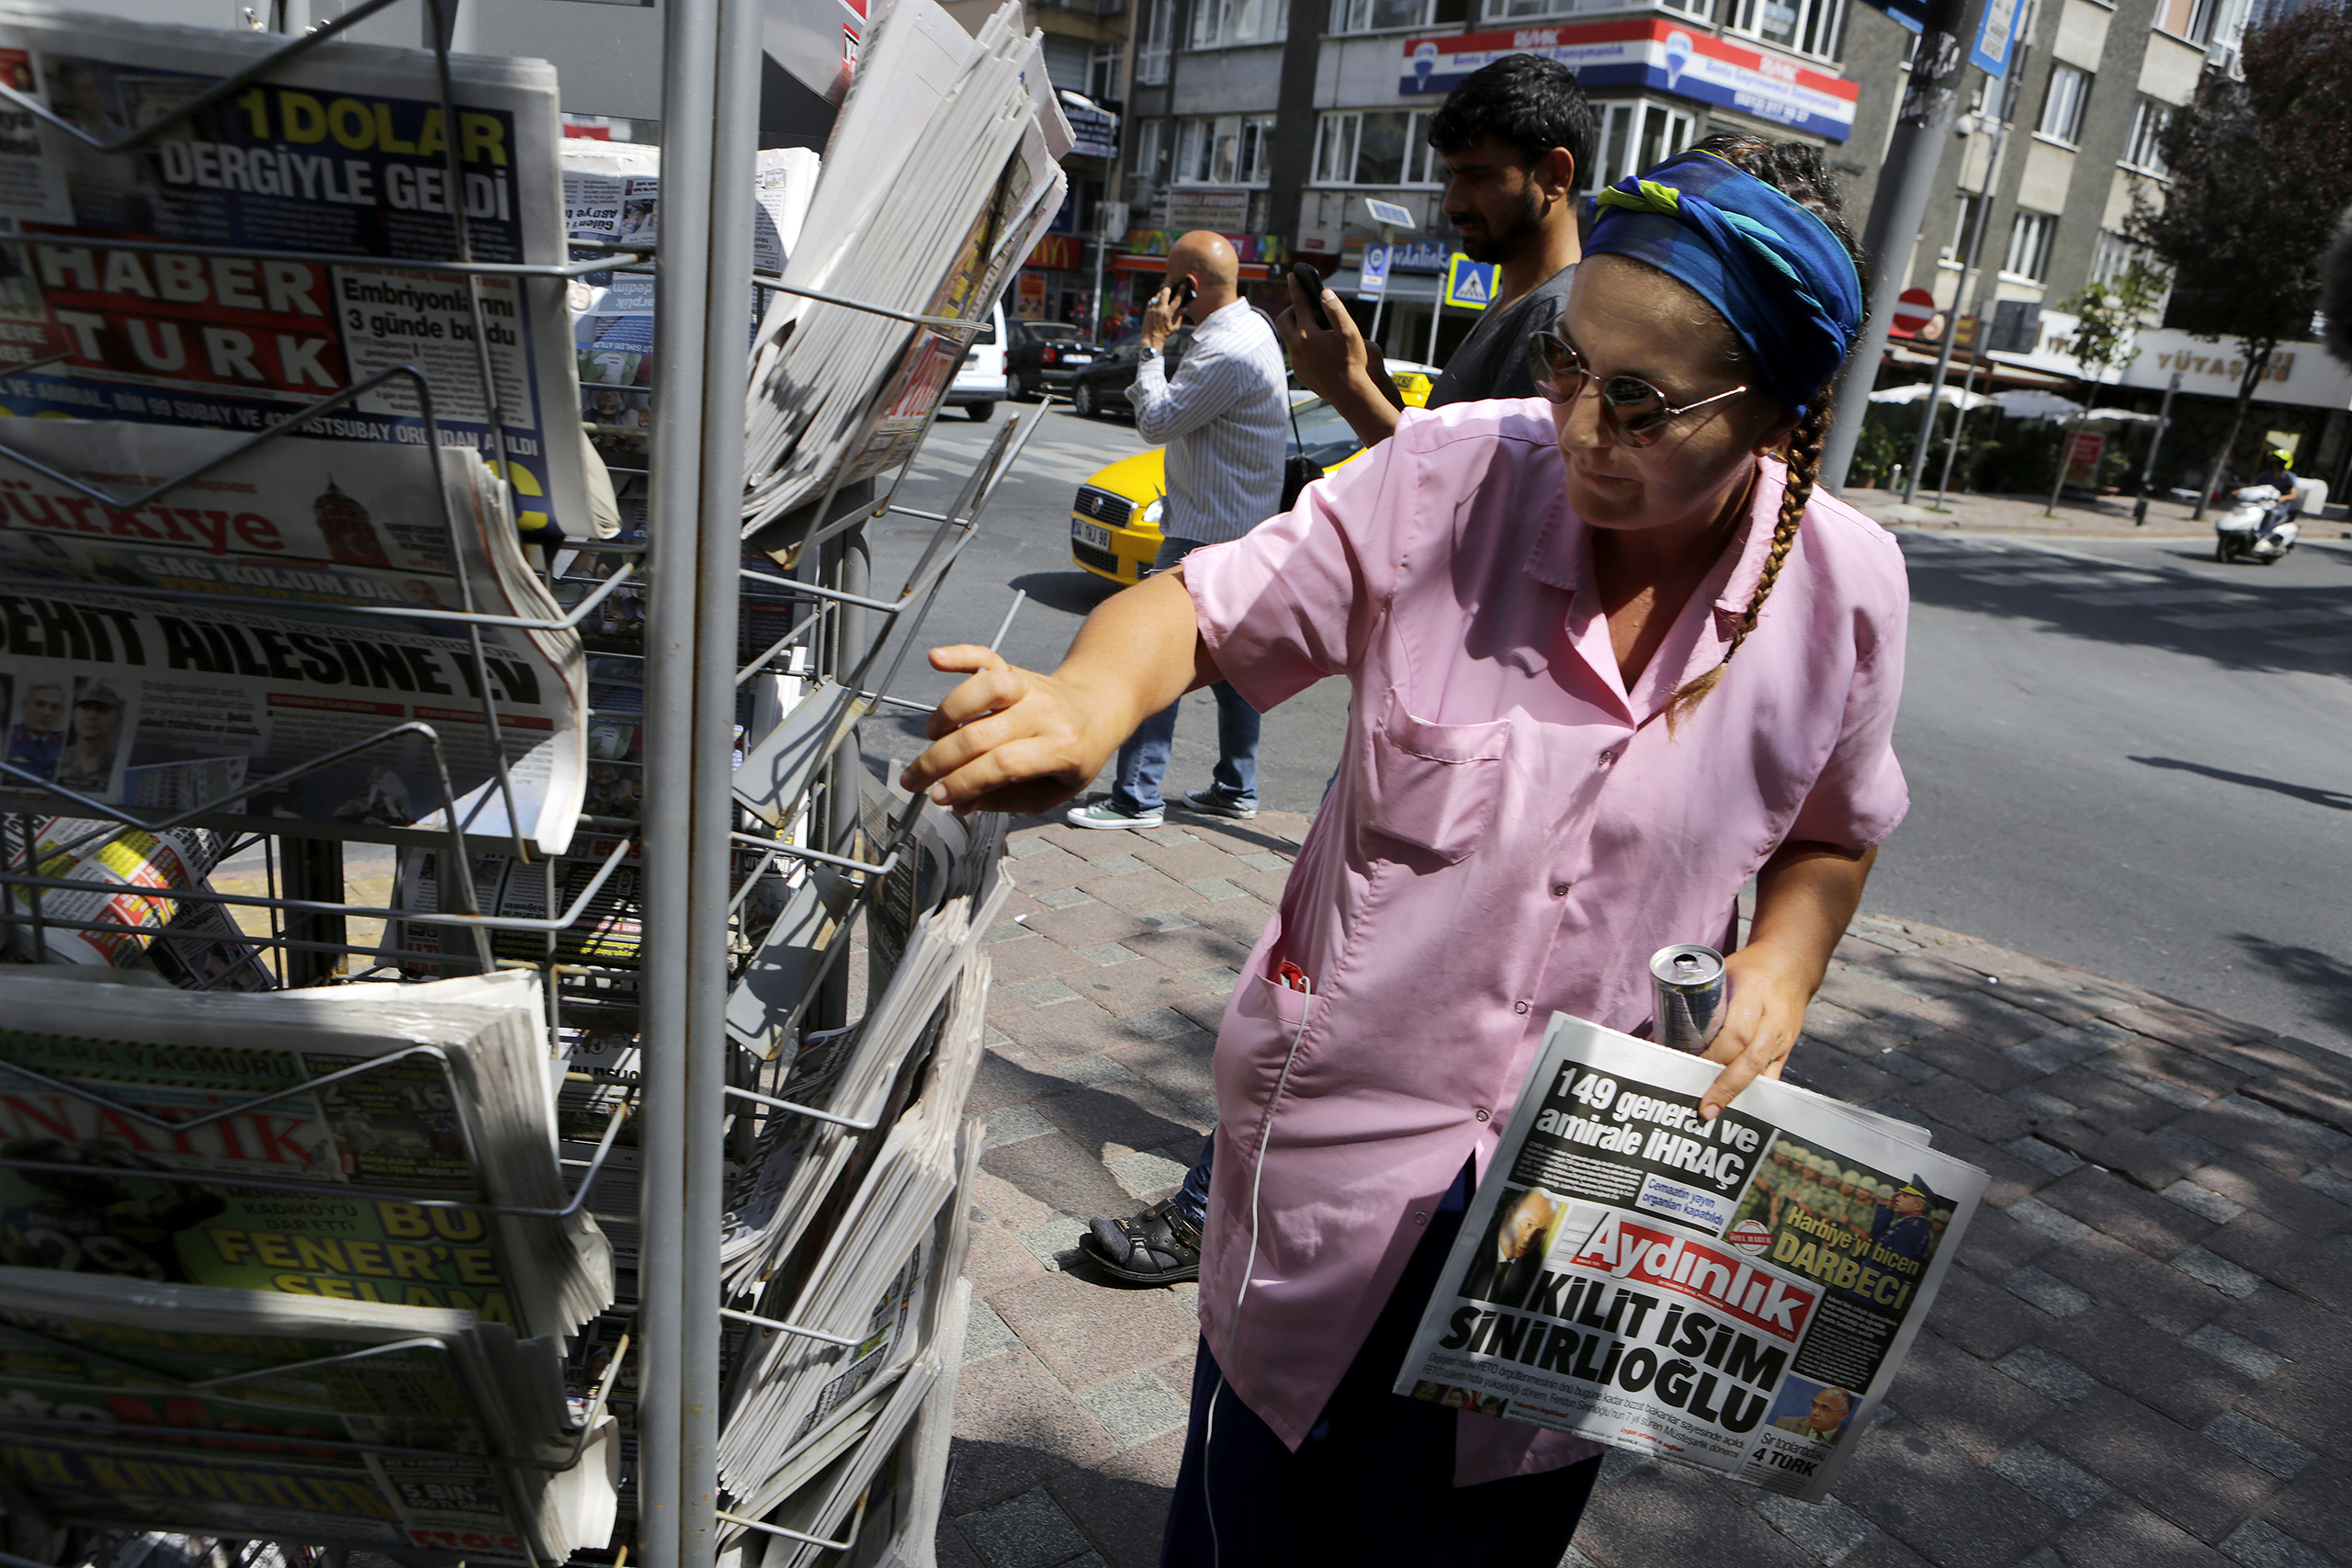 A woman buys a newspaper from a kiosk in Istanbul on July 28, 2016.